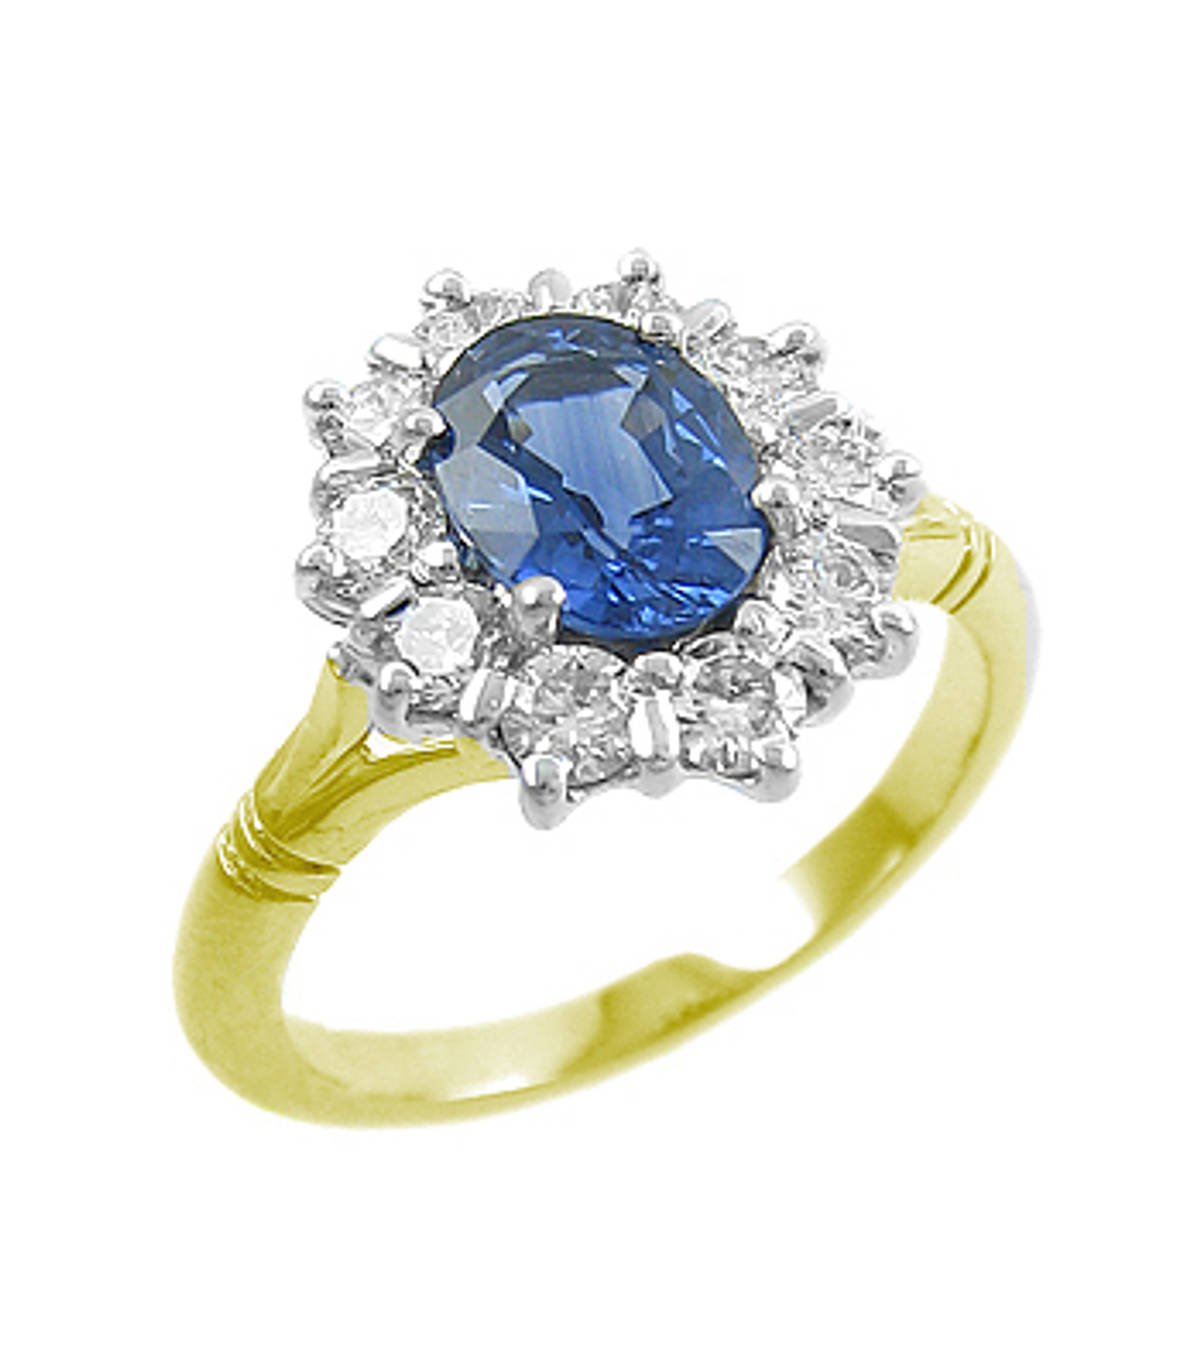 Sapphire and diamond cluster ring in 18 ct yellow gold